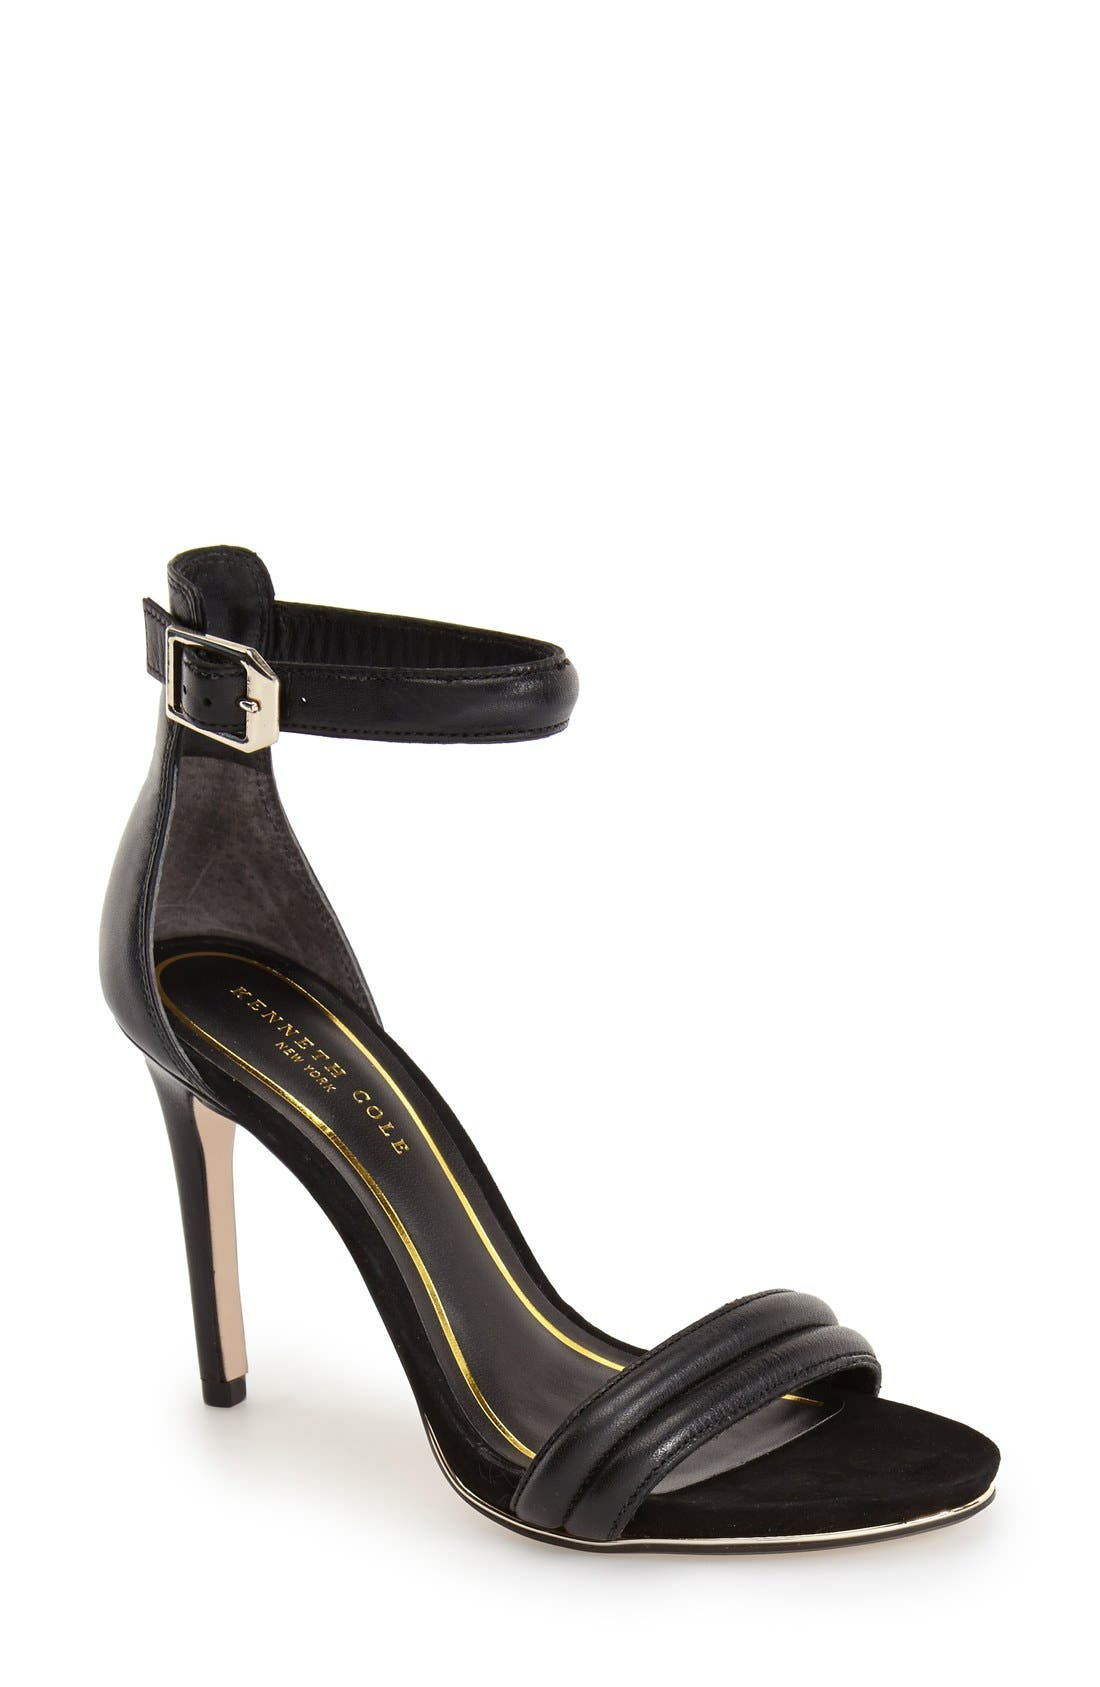 KENNETH COLE NEW YORK,                             'Brooke' Ankle Strap Sandal,                             Main thumbnail 1, color,                             BLACK LEATHER